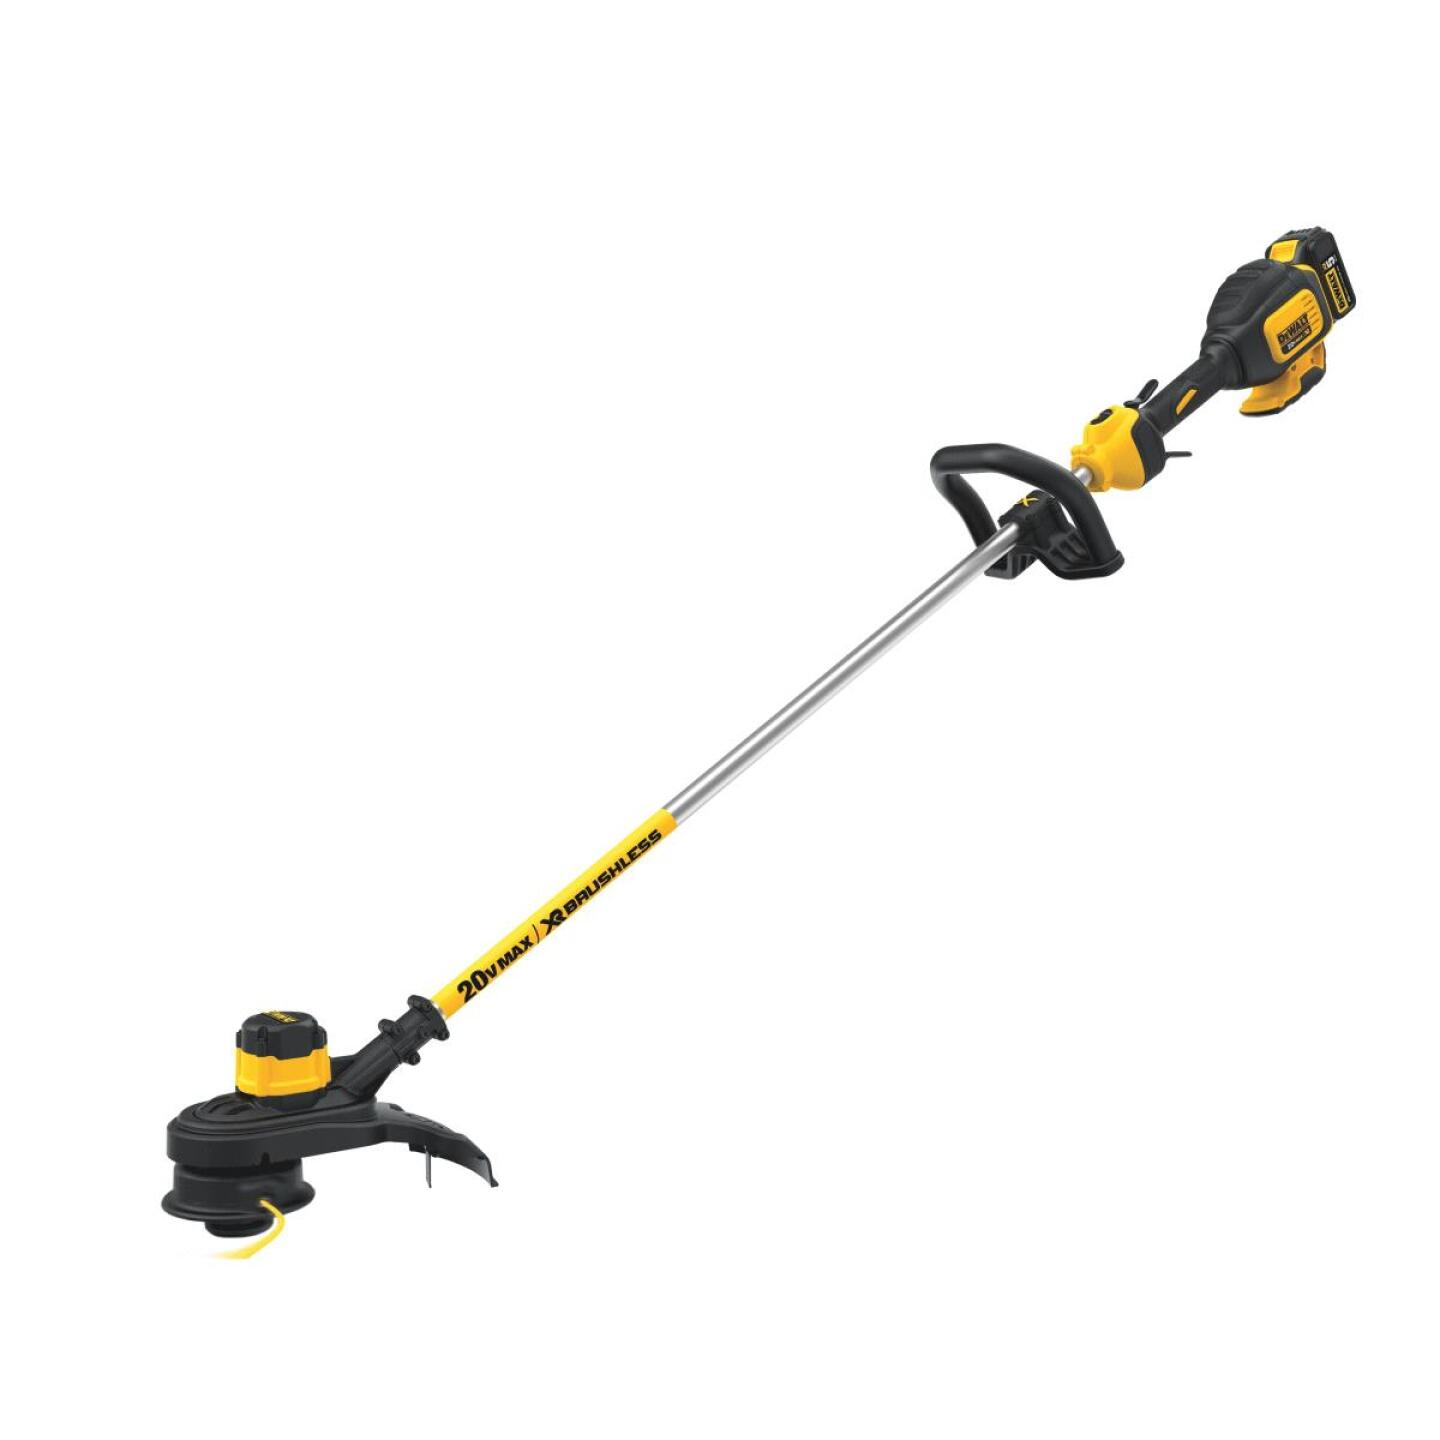 DeWalt 20V MAX 13 In. Lithium Ion Straight Cordless String Trimmer Image 4